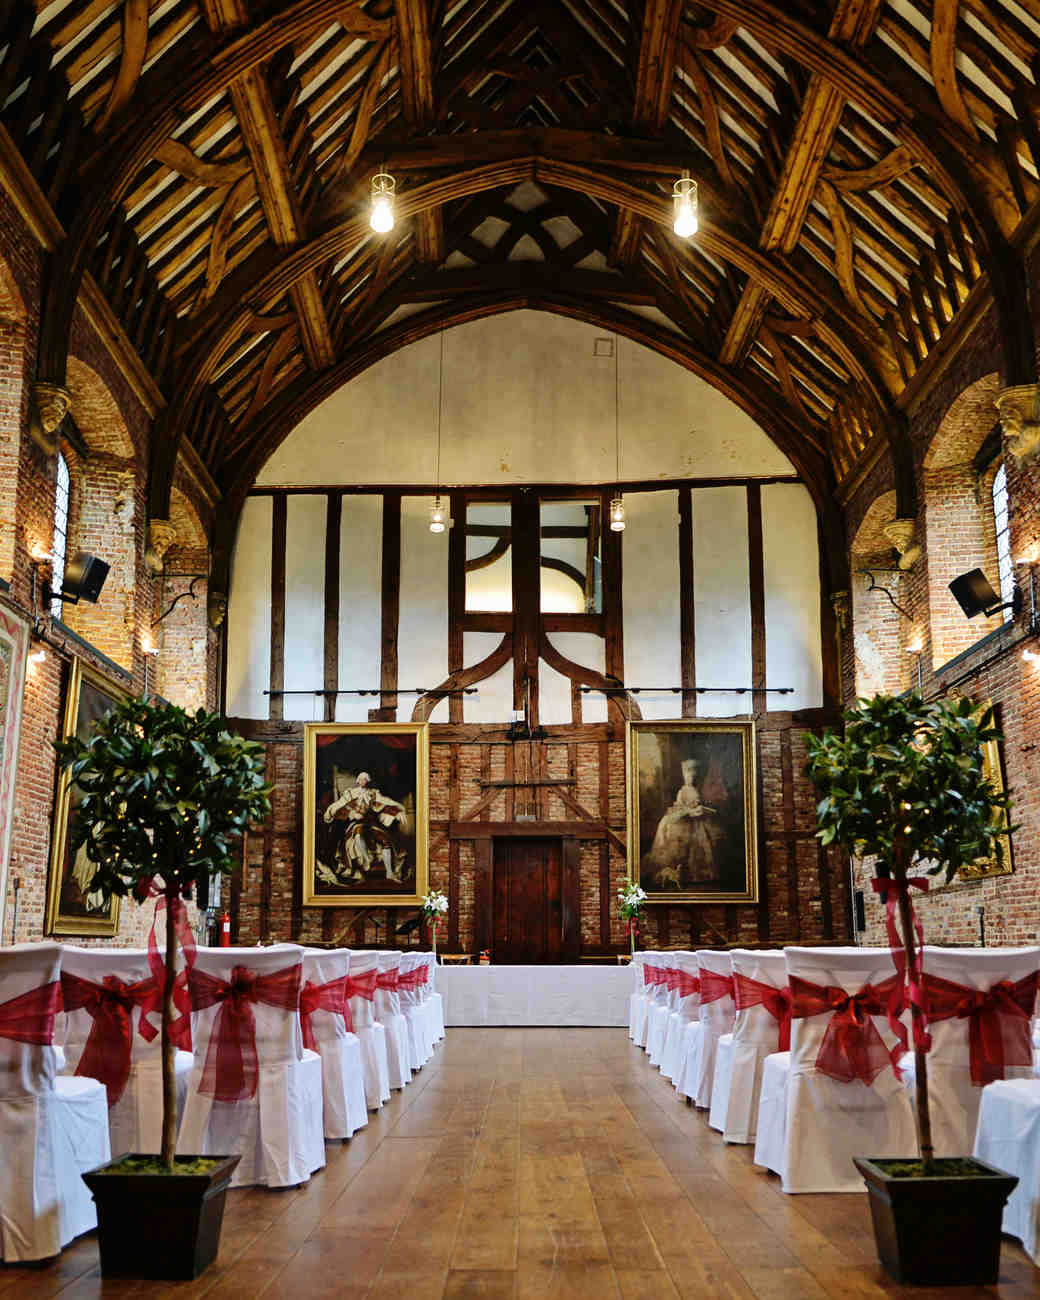 filming-locations-wedding-venues-hatfield-house-batman-0215.jpg